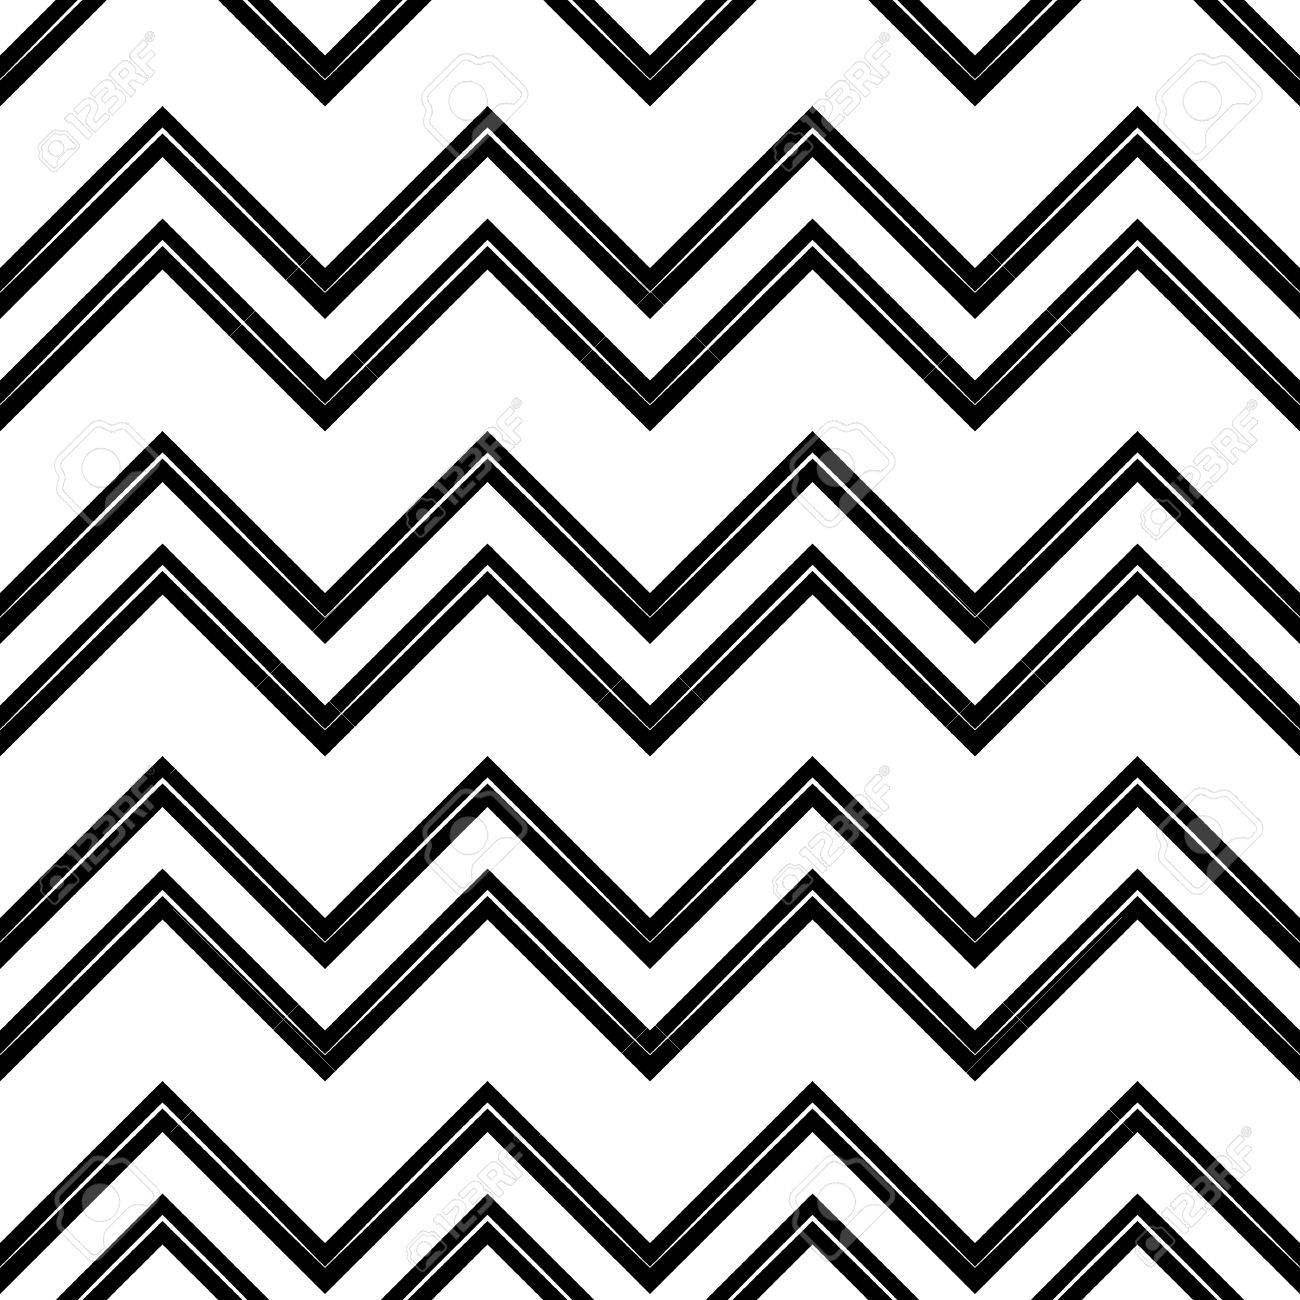 classic chevron pattern back and white royalty free cliparts rh 123rf com Chevron Vector Graphic Chevron Vector Art